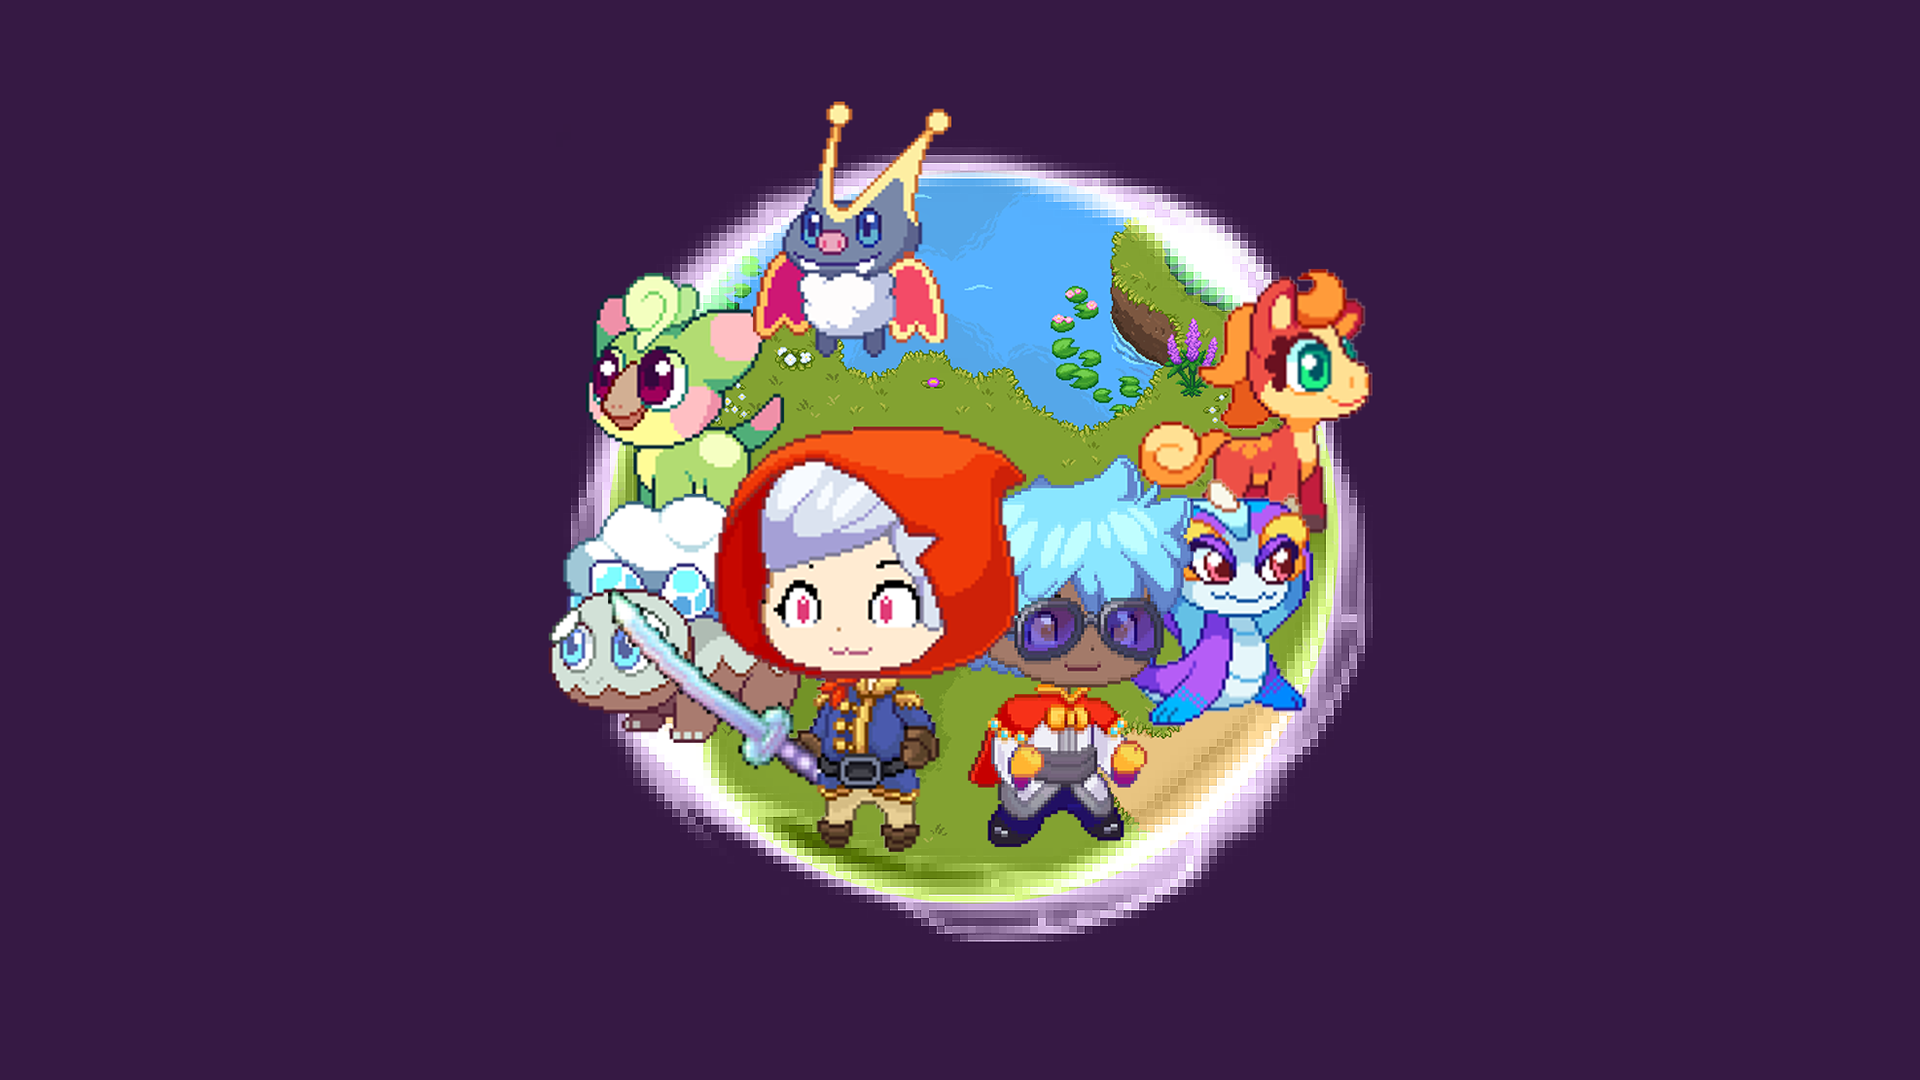 Featured image for the Prodigy Math Game Portal. Purple background that has a circle in the center, with an image inside of two Prodigy characters and five Prodigy pets in the background.